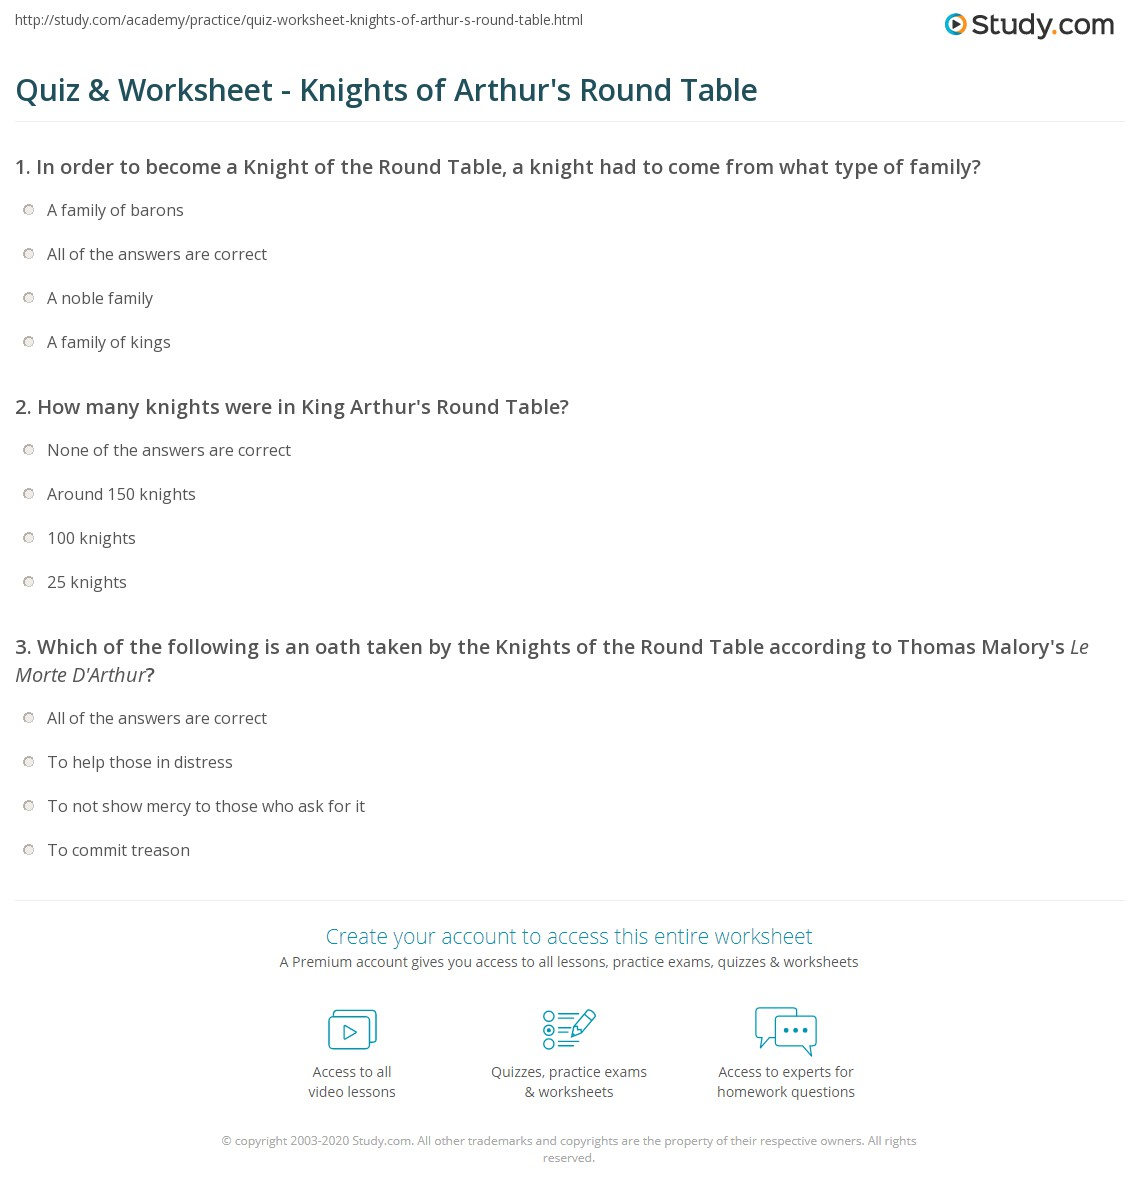 Quiz worksheet knights of arthurs round table study print knights of arthurs round table legend overview worksheet fandeluxe Gallery